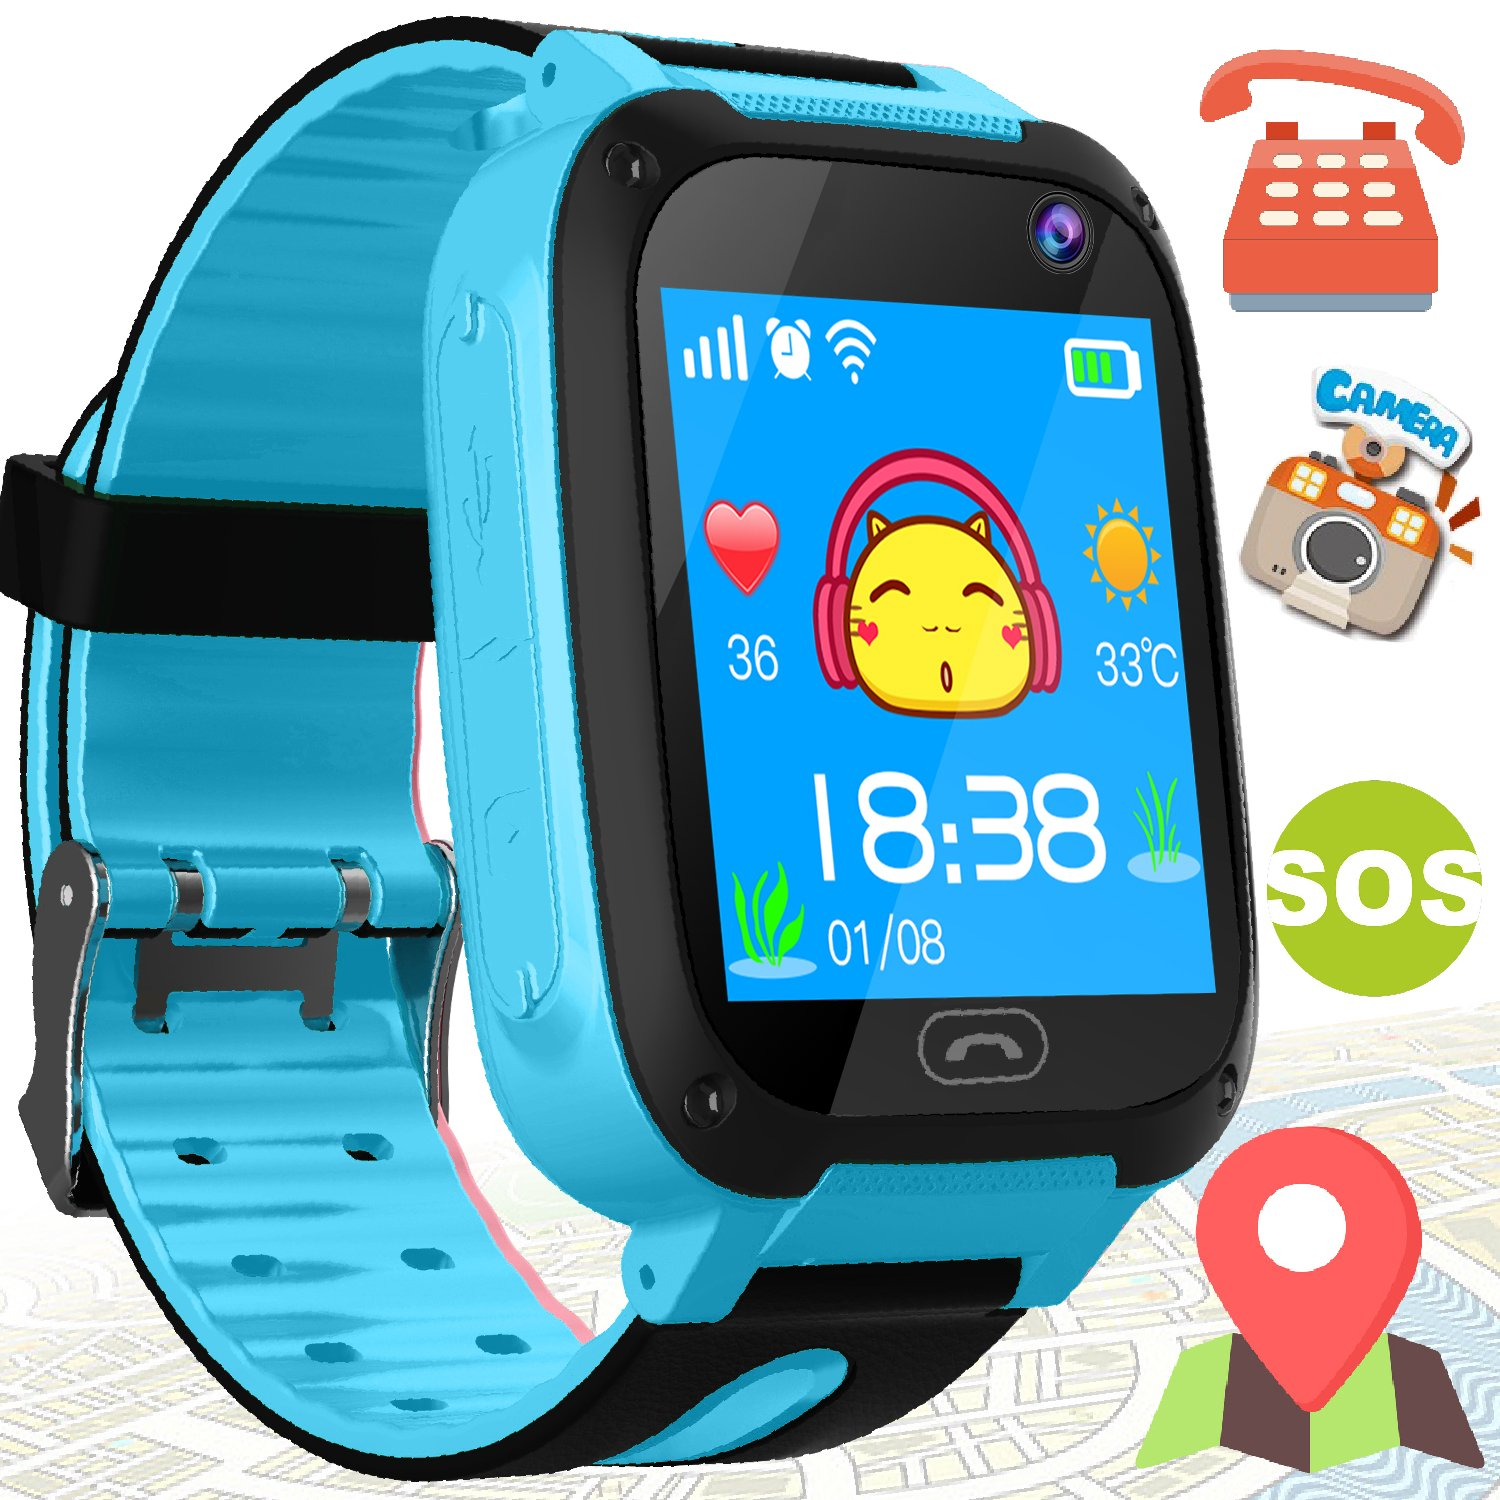 Kids Smart Watch Phone - Kids GPS Tracker Smartwatch for Girls Boys with Mobile Phone SOS Anti-lost Camera Game Touch Screen Children Outdoor Digital Wrist Watch Bracelet for Summer Holiday Gift